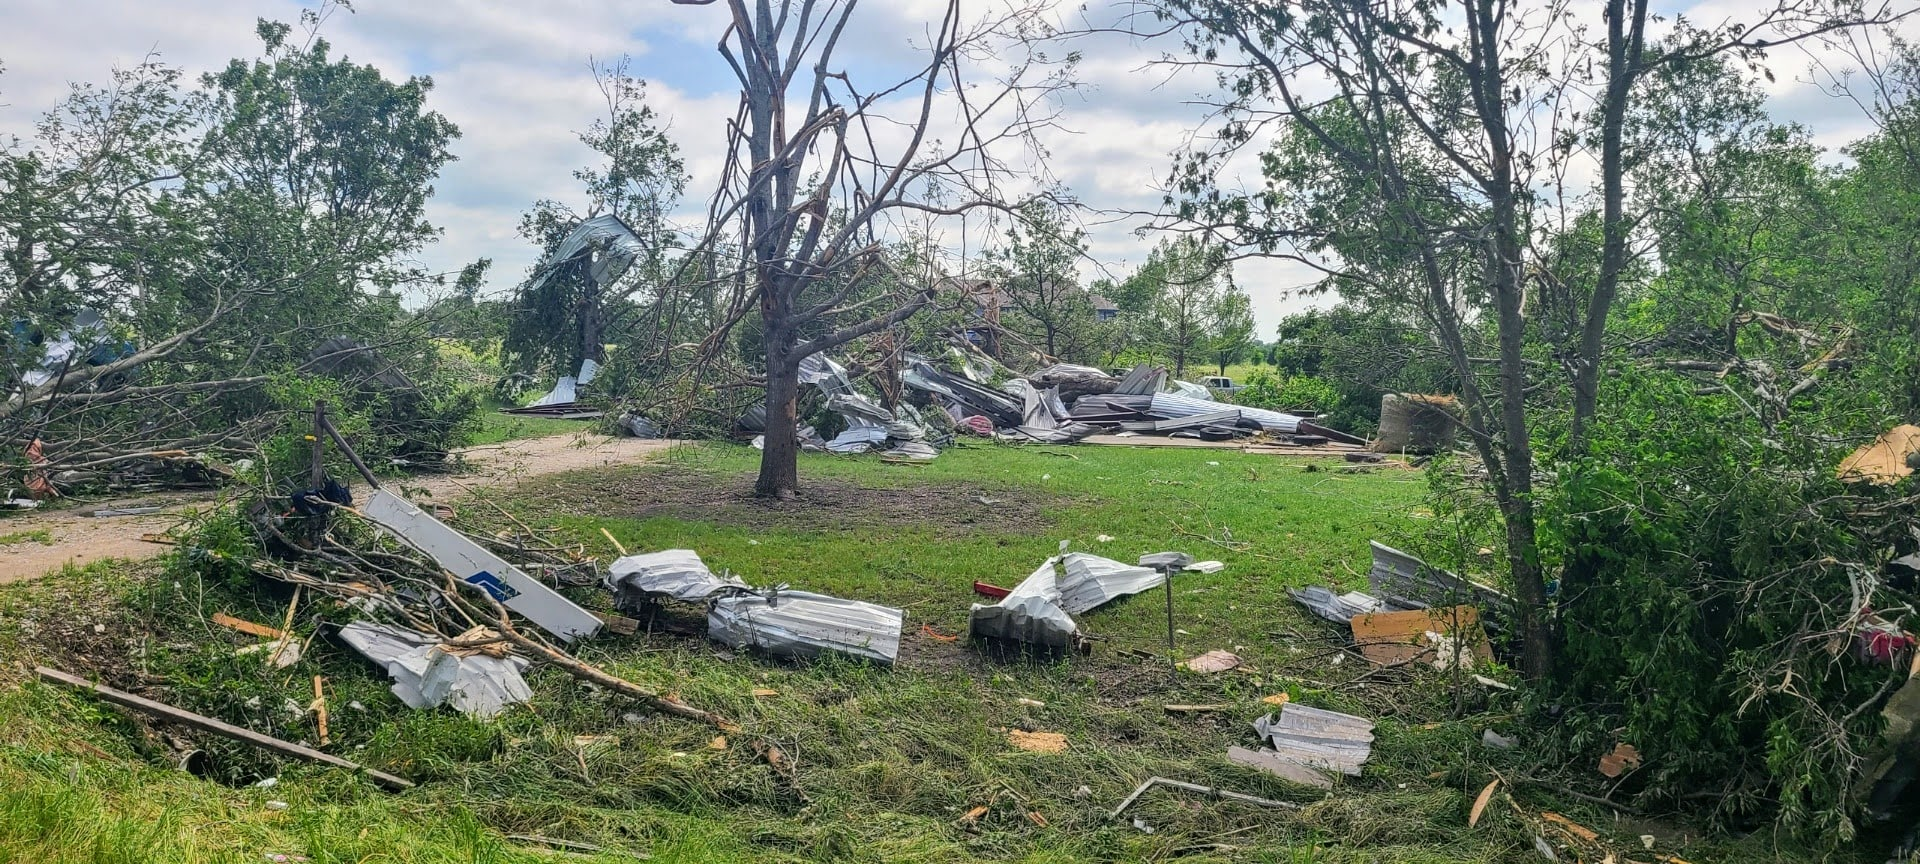 Storm damage from EF2 tornado in Ellis County